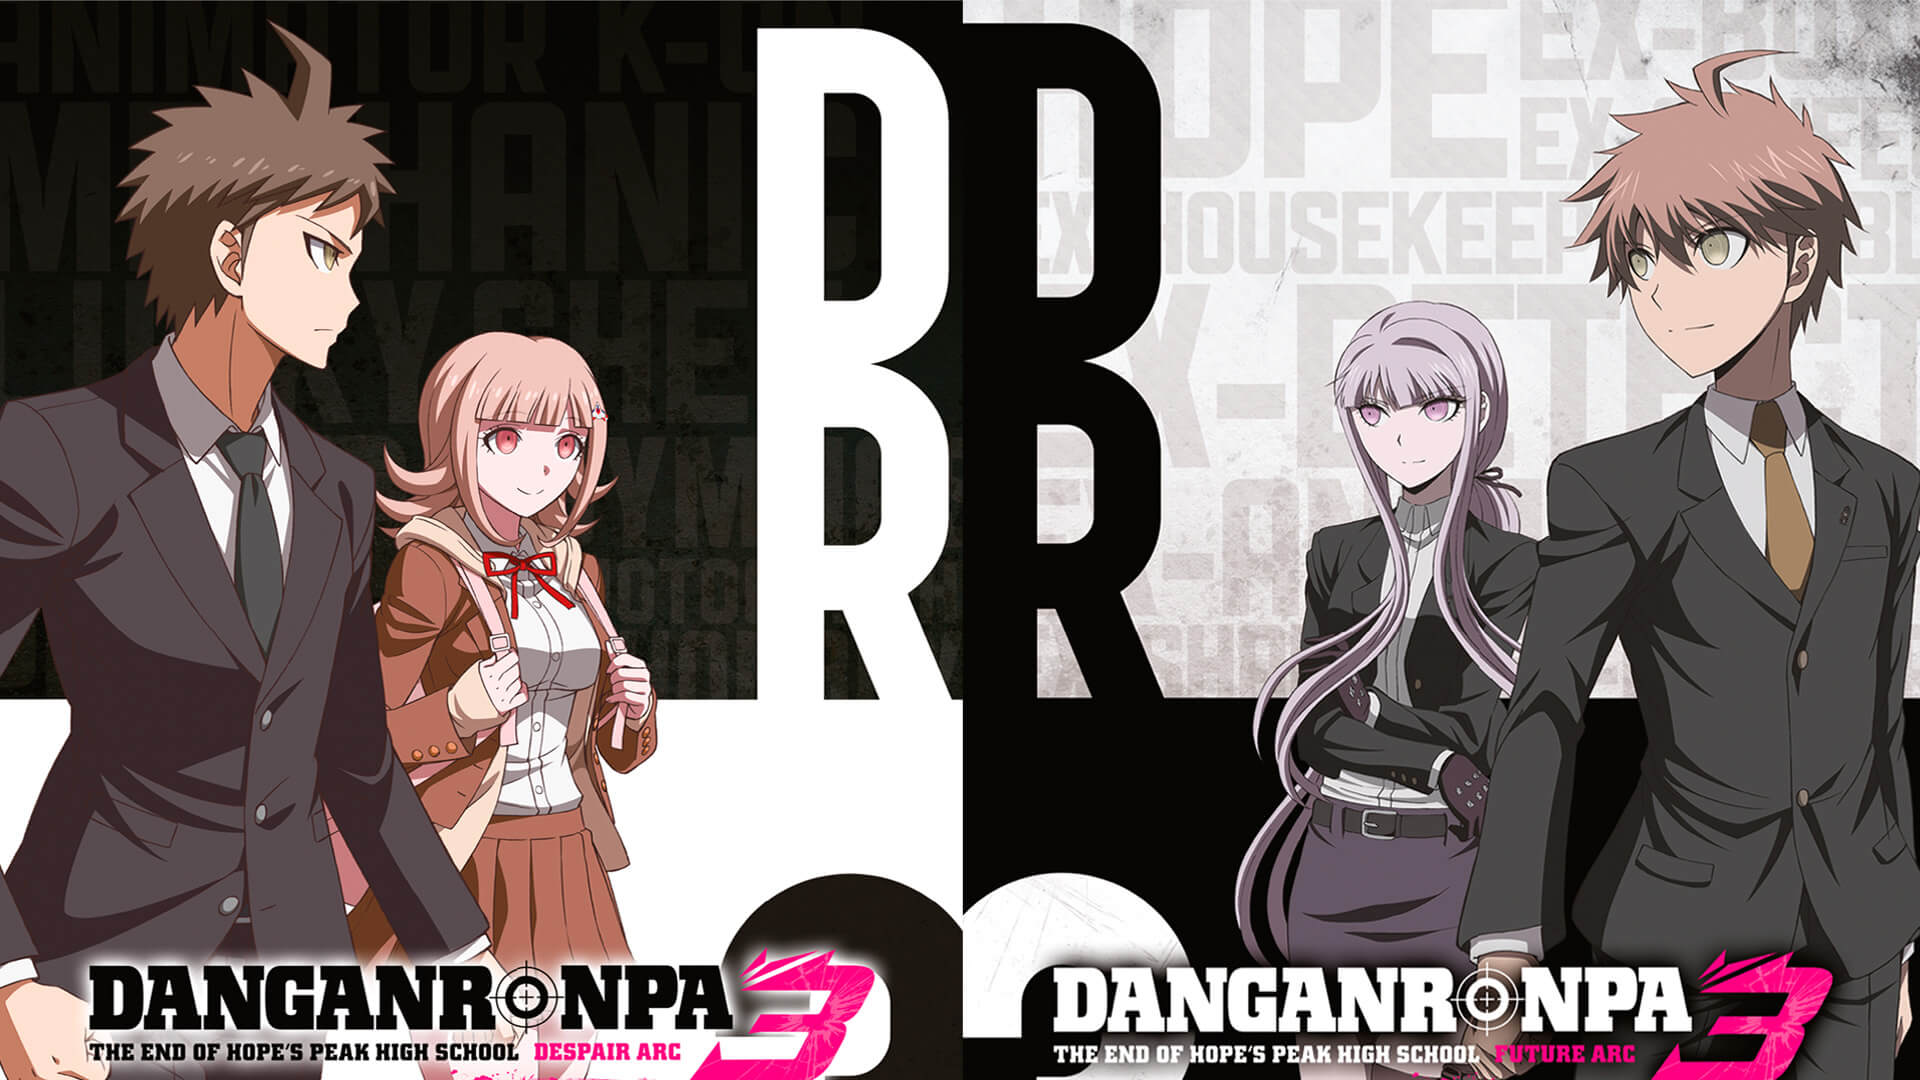 Danganronpa 3: The End of Hope's Peak High School Review